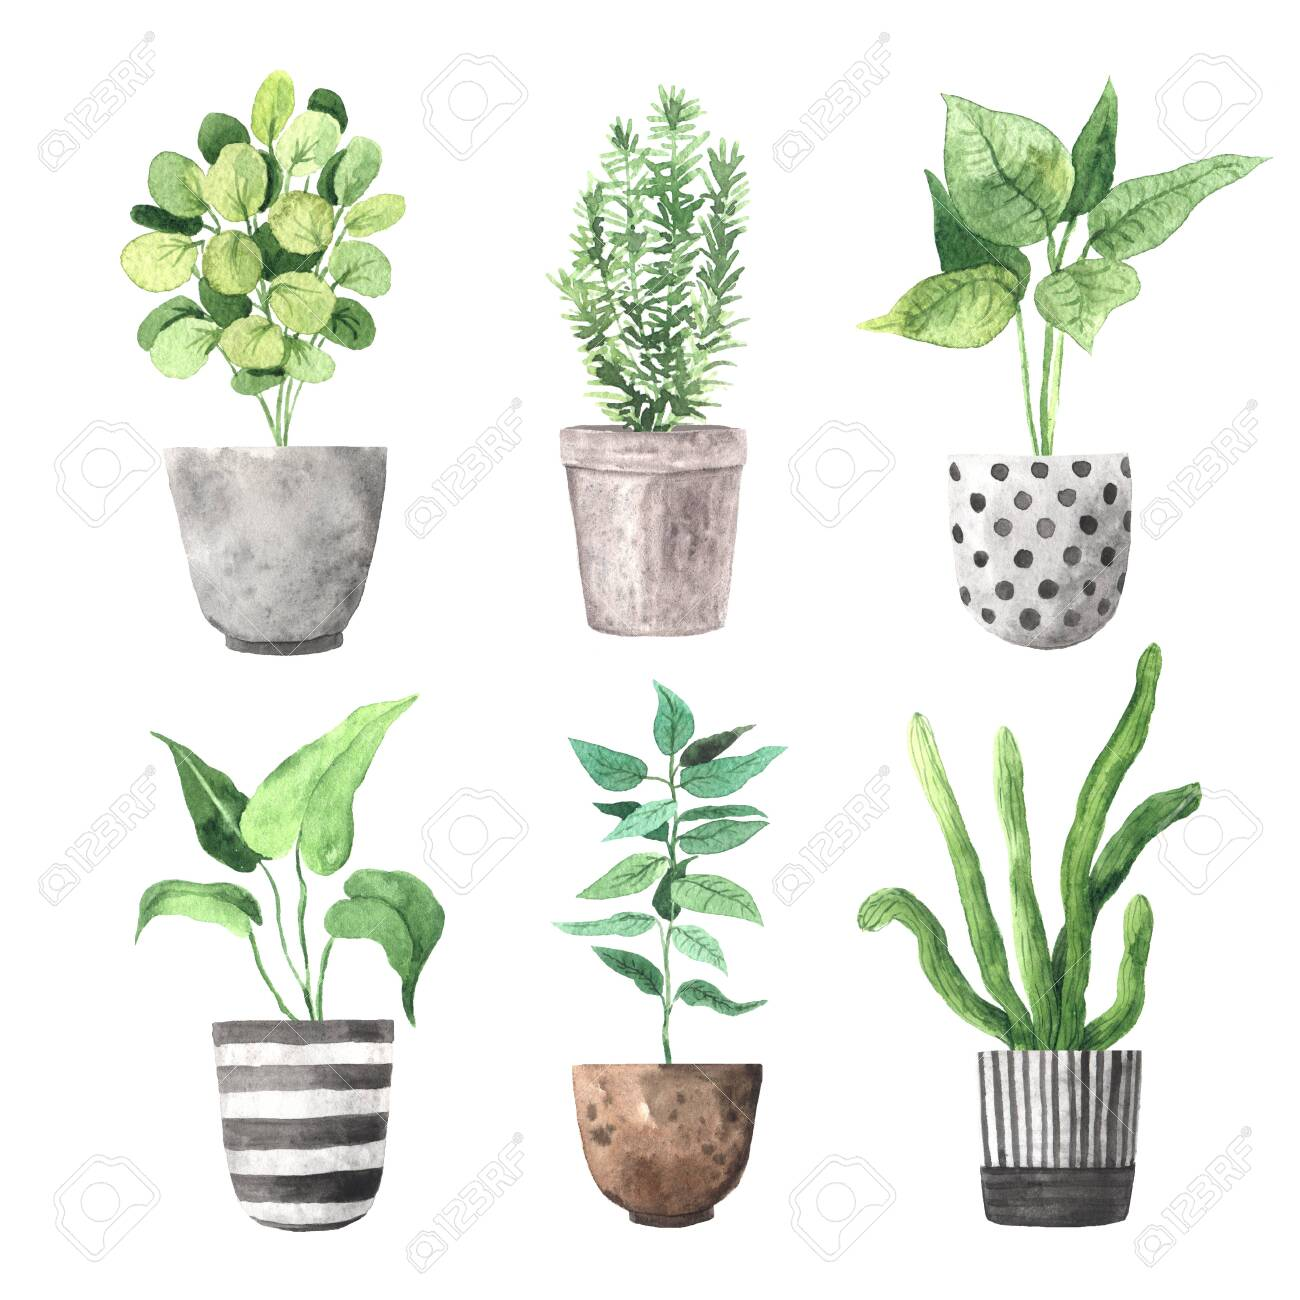 Watercolor Hand Painted House Green Plants In Flower Pots Set Stock Photo Picture And Royalty Free Image Image 134782484